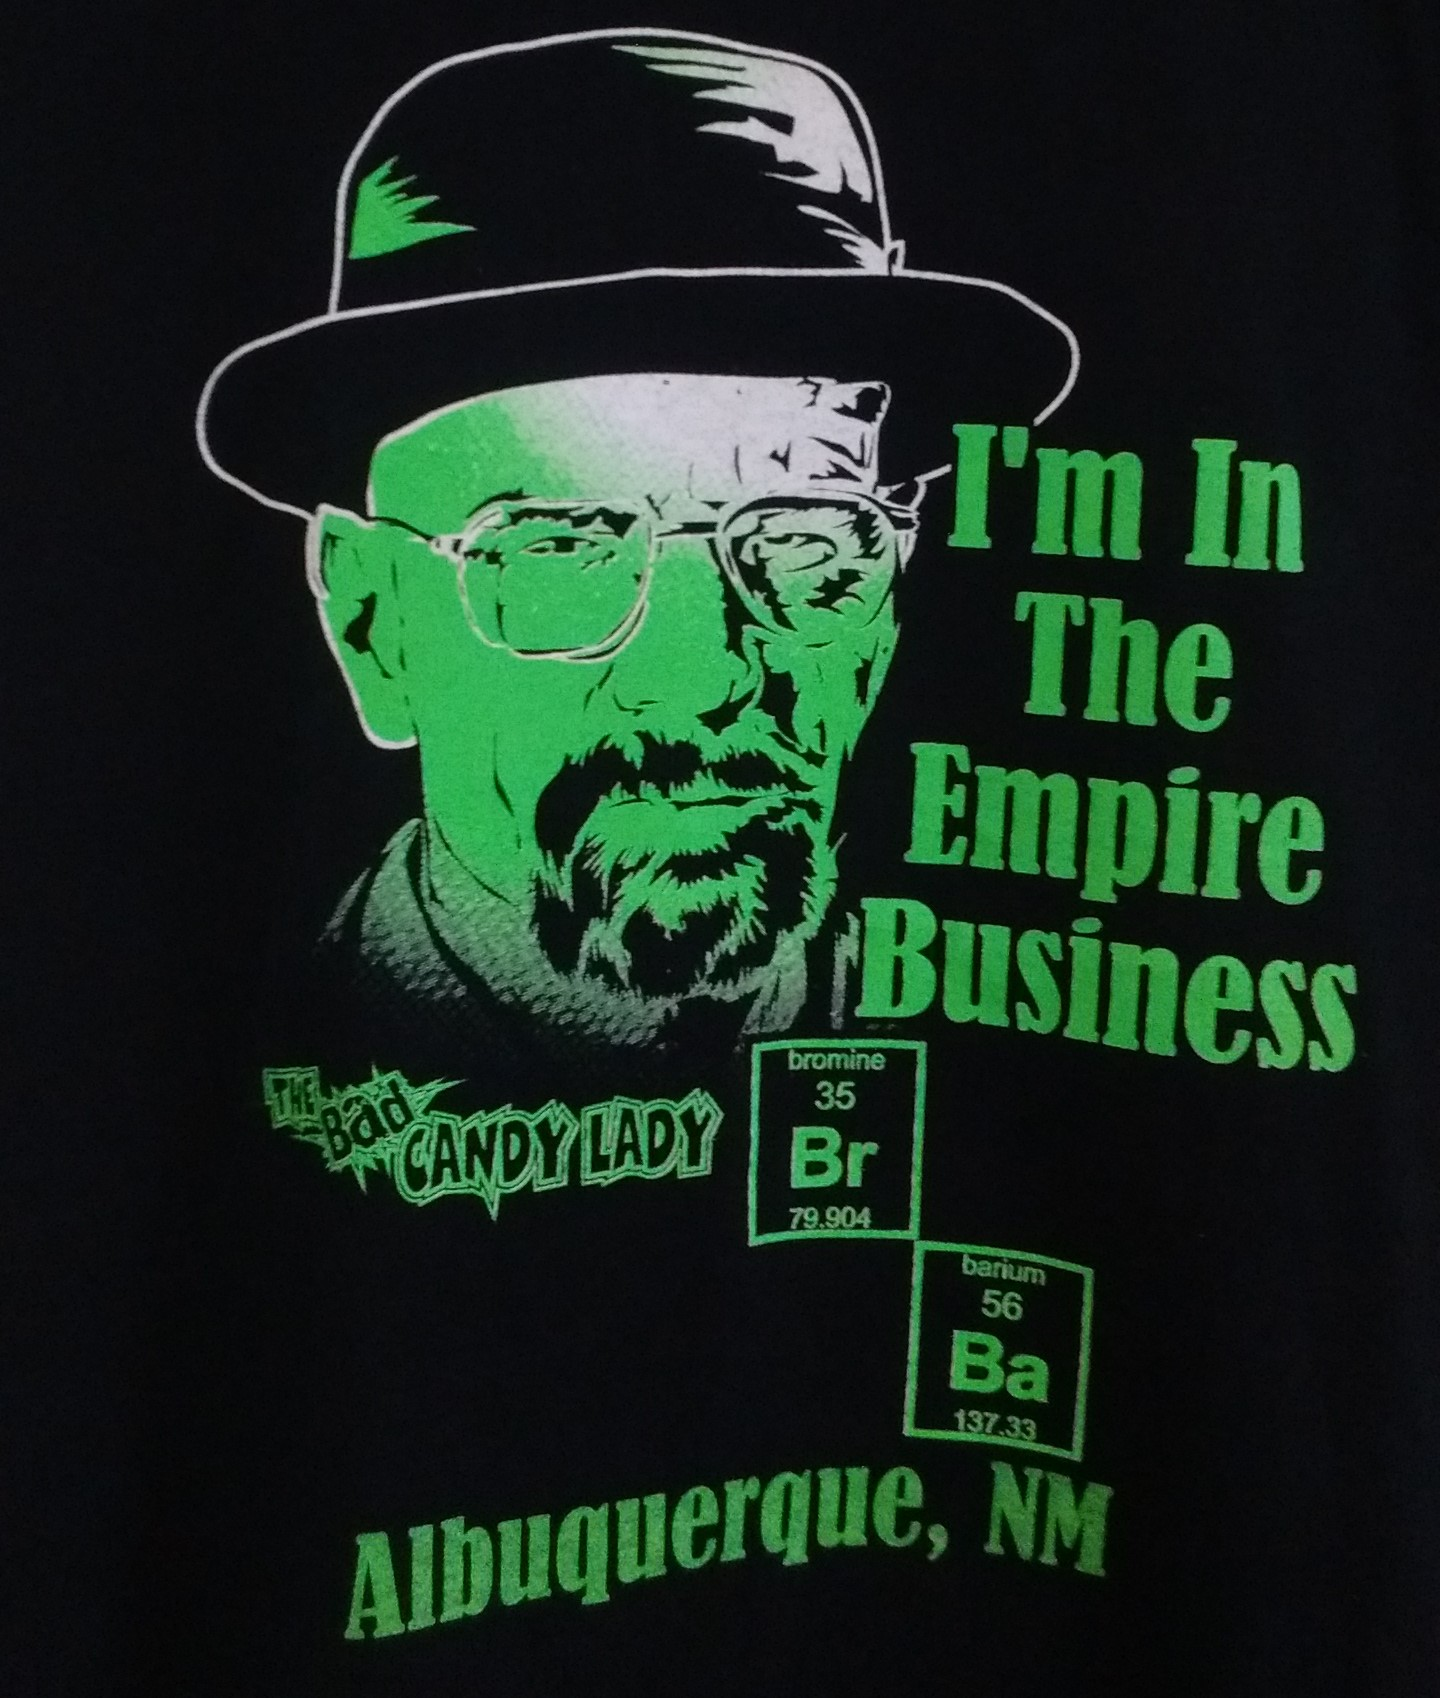 I'm In The Empire Business – T-shirt